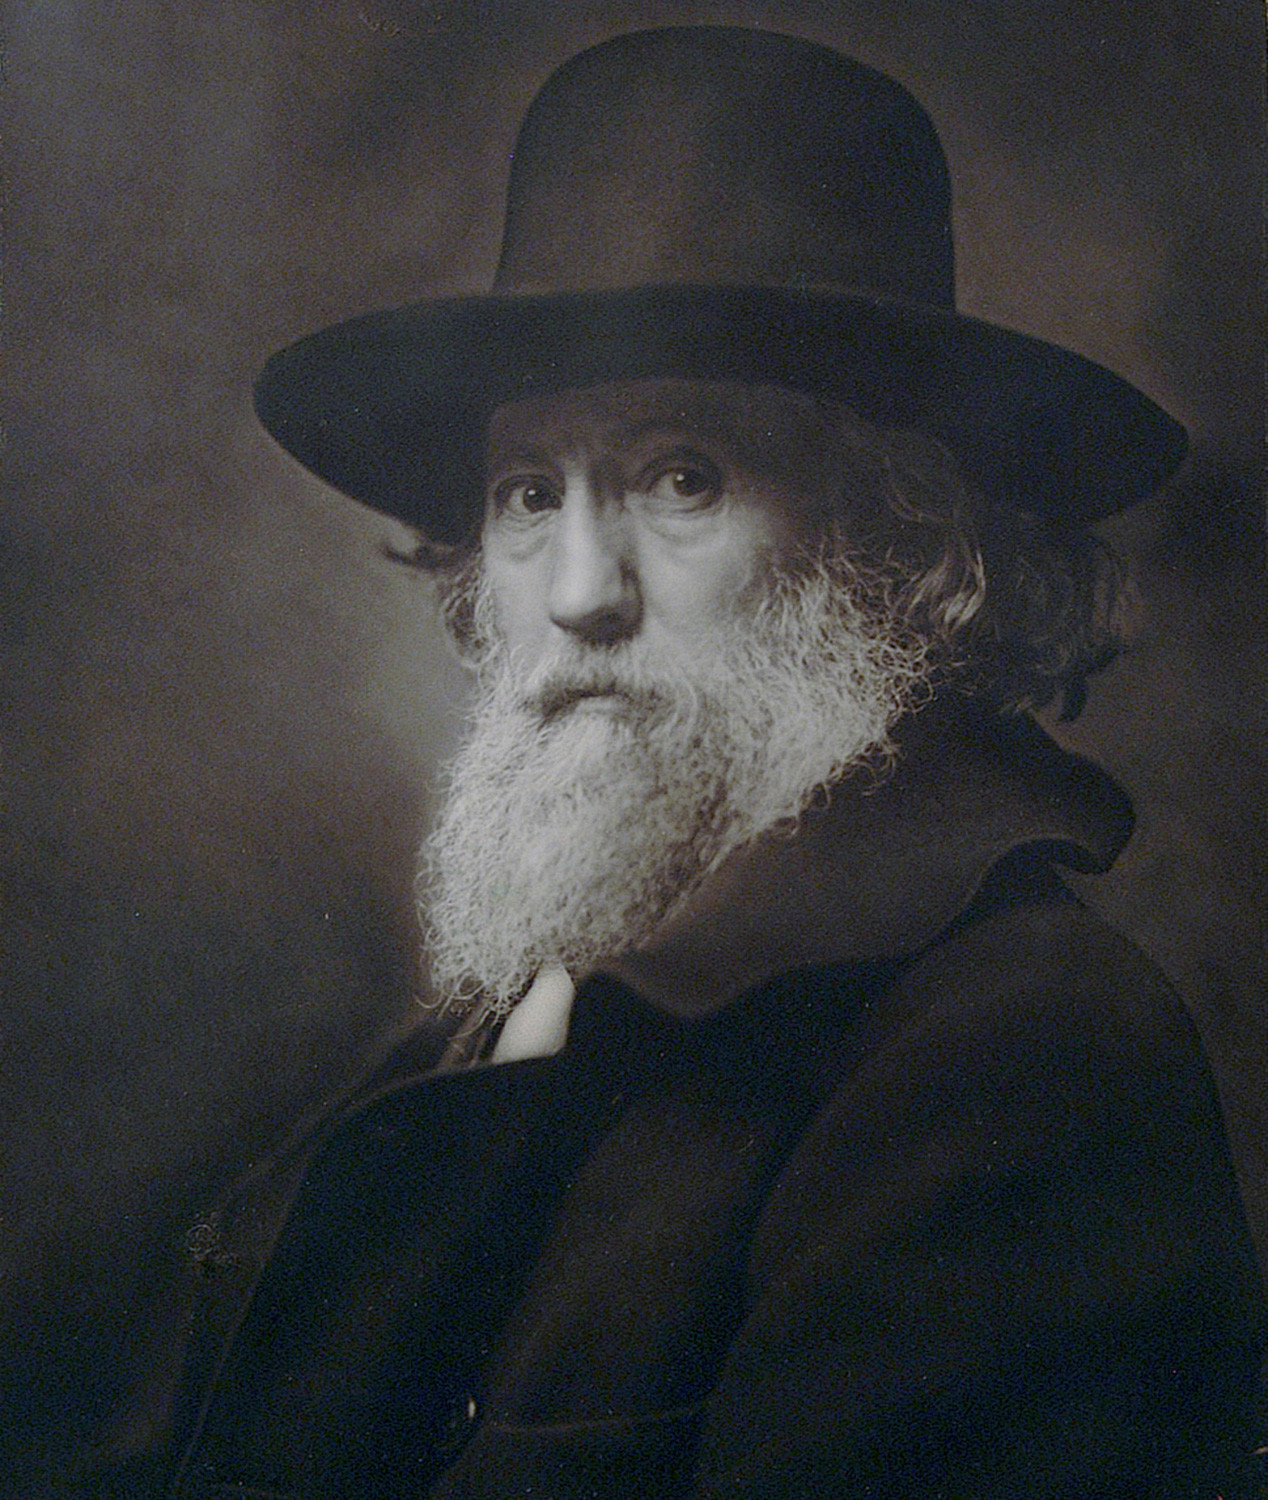 Rudolf Eickemeyer Jr., one of the Hudson River Museum's founders, photographed his father, an inventor who manufactured hat making machinery and other engines, in 'Portrait of My Father.' The photograph is part of a series of portraits from the 1800s to early 2000 at the Hudson River Museum.